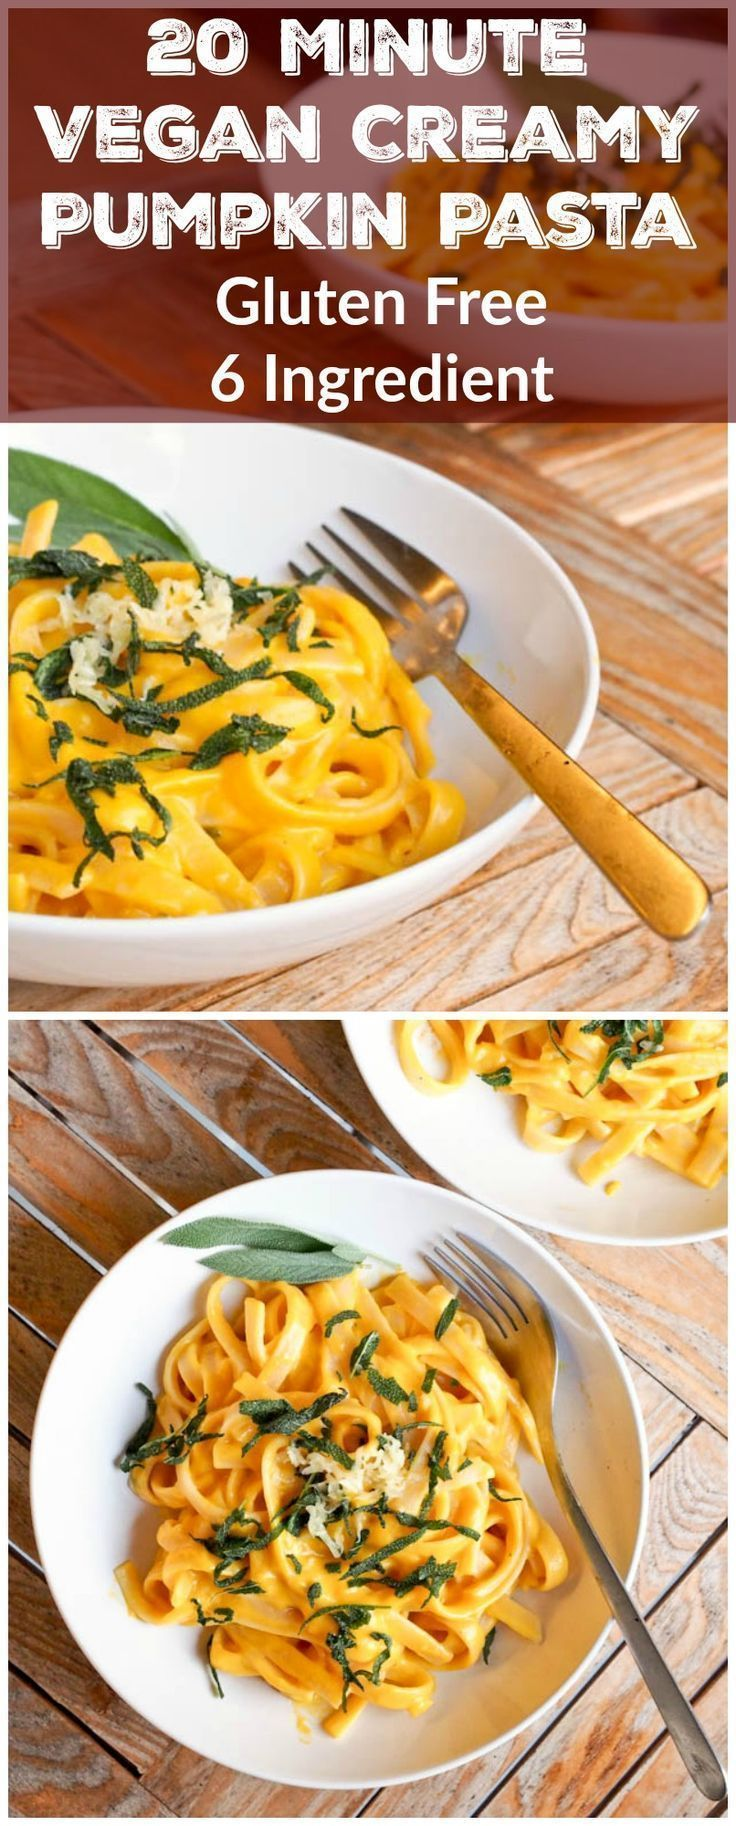 Need dinner on the table quickly? Make this 20 minute 6 ingredient vegan creamy pumpkin pasta. Can be made with butternut squash instead! Healthy, simple and delicious. #vegan #glutenfree